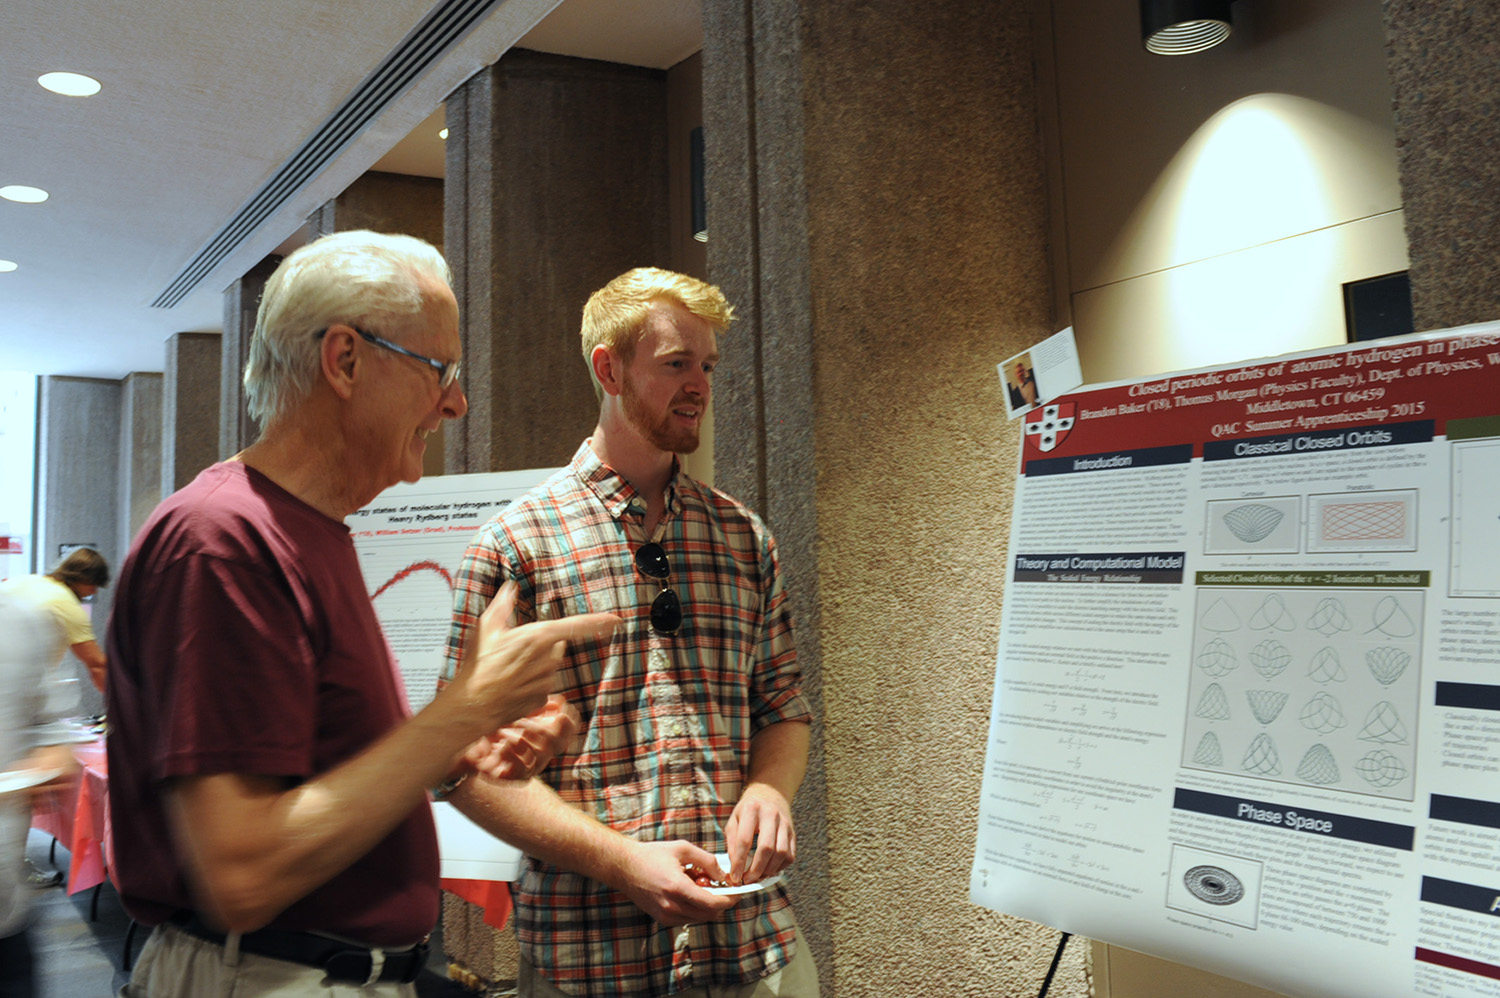 On July 30, the Wesleyan Summer Research Poster Session was held at Exley Science Center. More than 50 undergraduate research fellows presented research at the event. (Photo by Laurie Kenney)